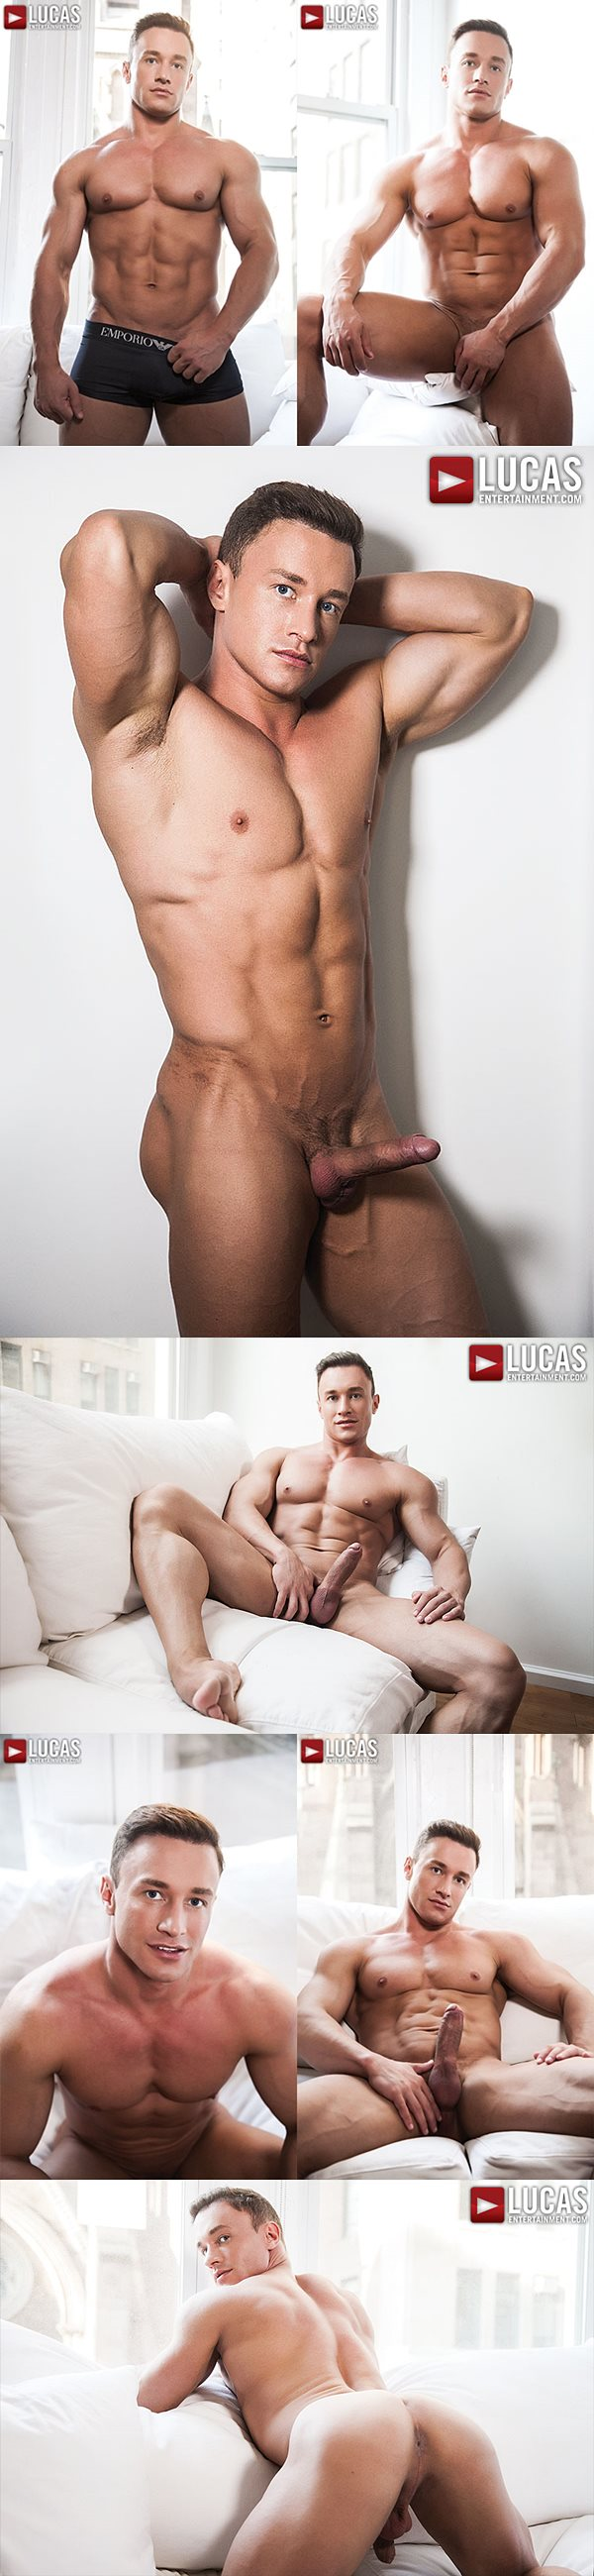 Handsome Russian muscle jock Alexander Volkov's bottoming debut at Lucasentertainment